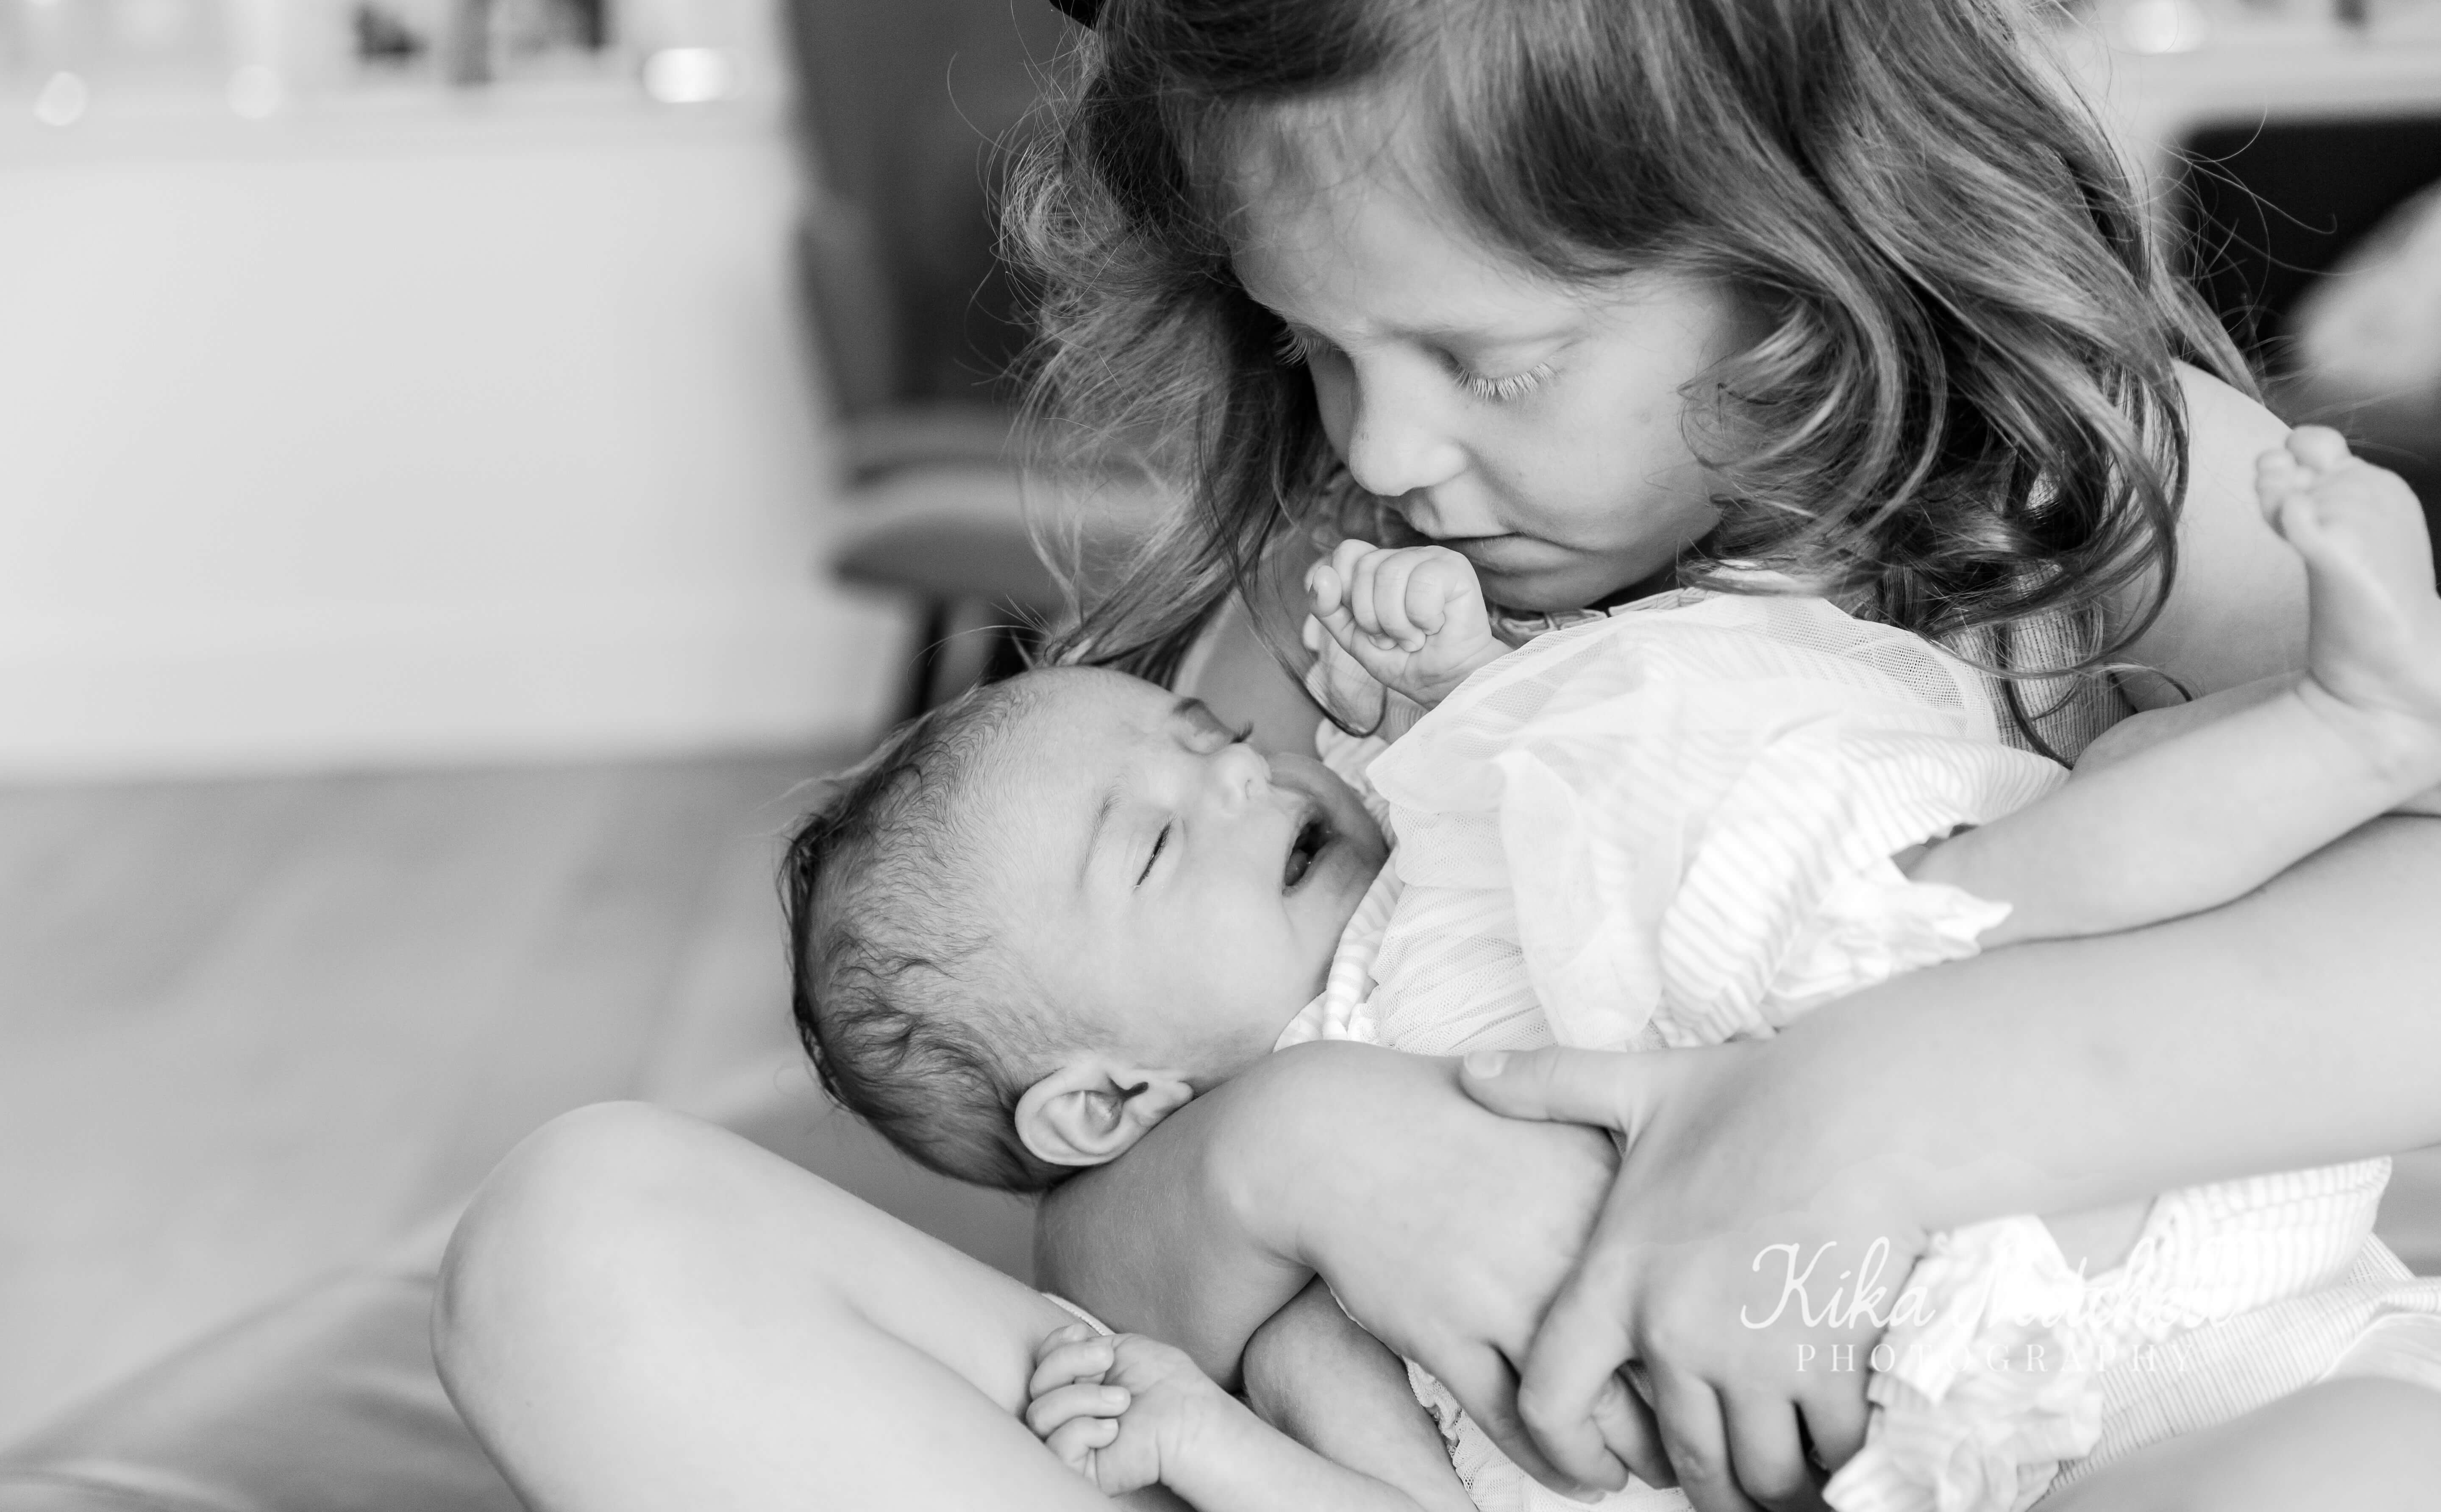 sibling photography on newborn shoot by Kika mitchell Photography Chelmsford Photographer